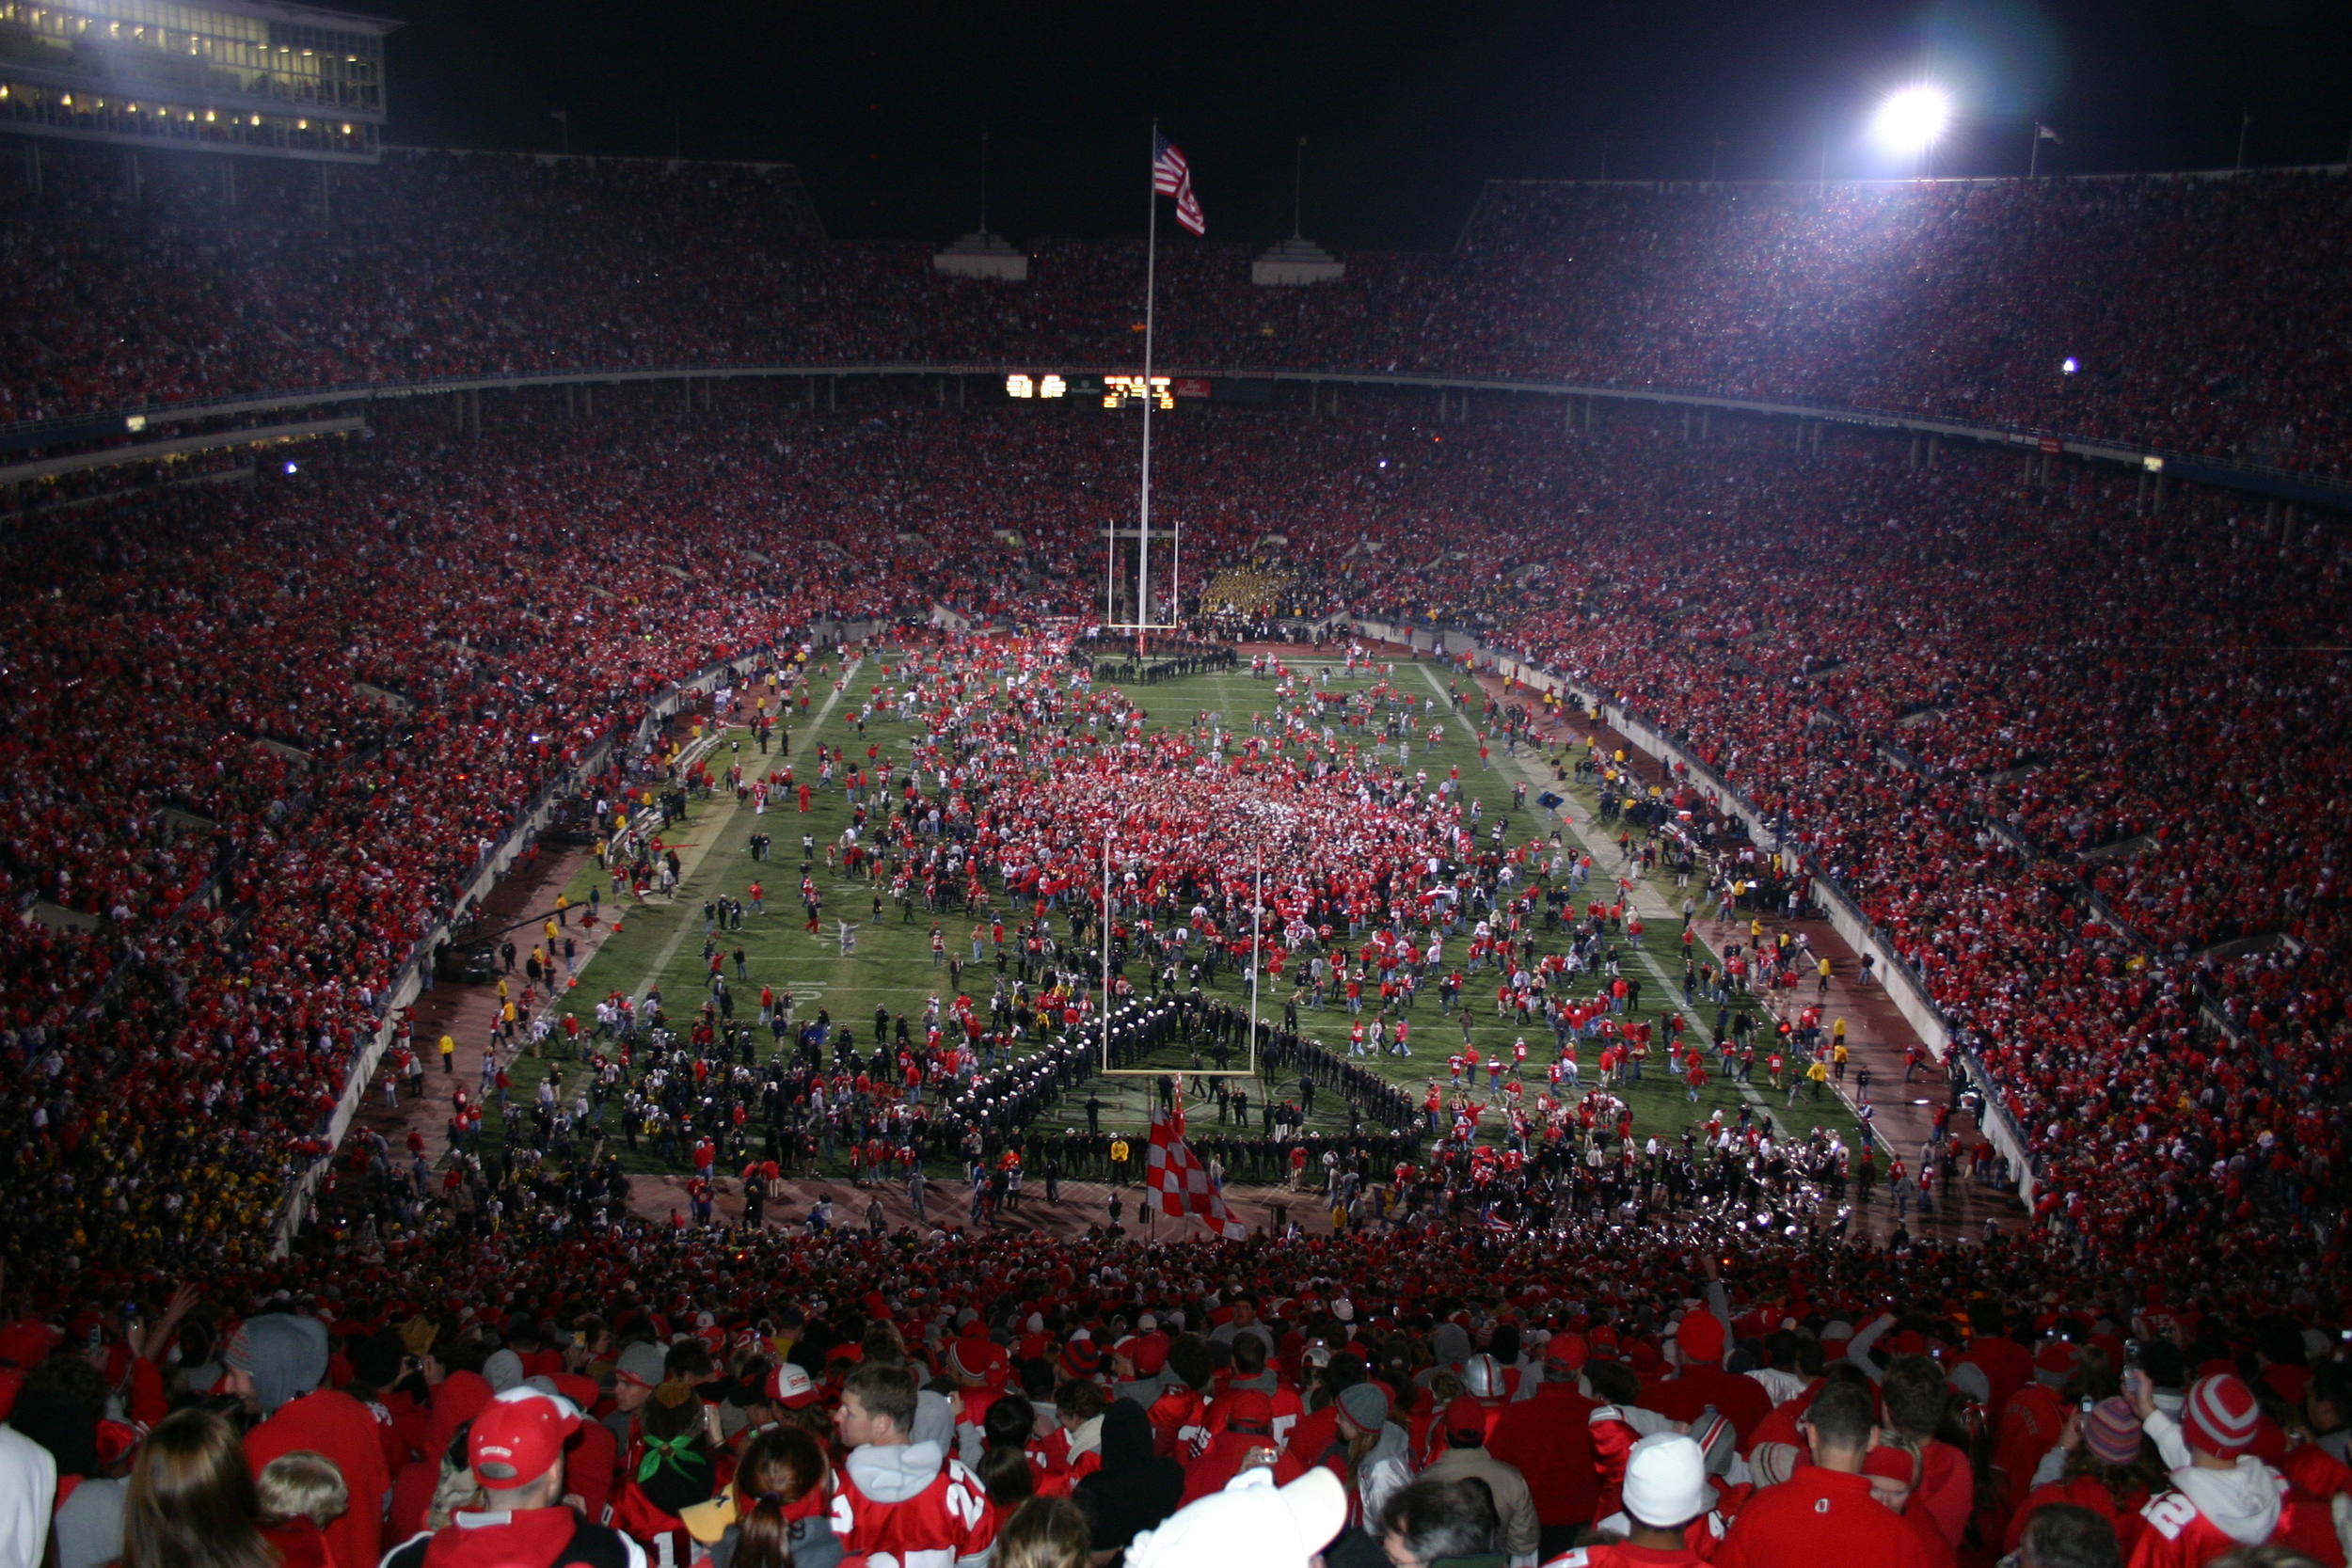 My view in 2006. It (rushing the field) has happened three times now in my presence: 2002, 2006, 2012.